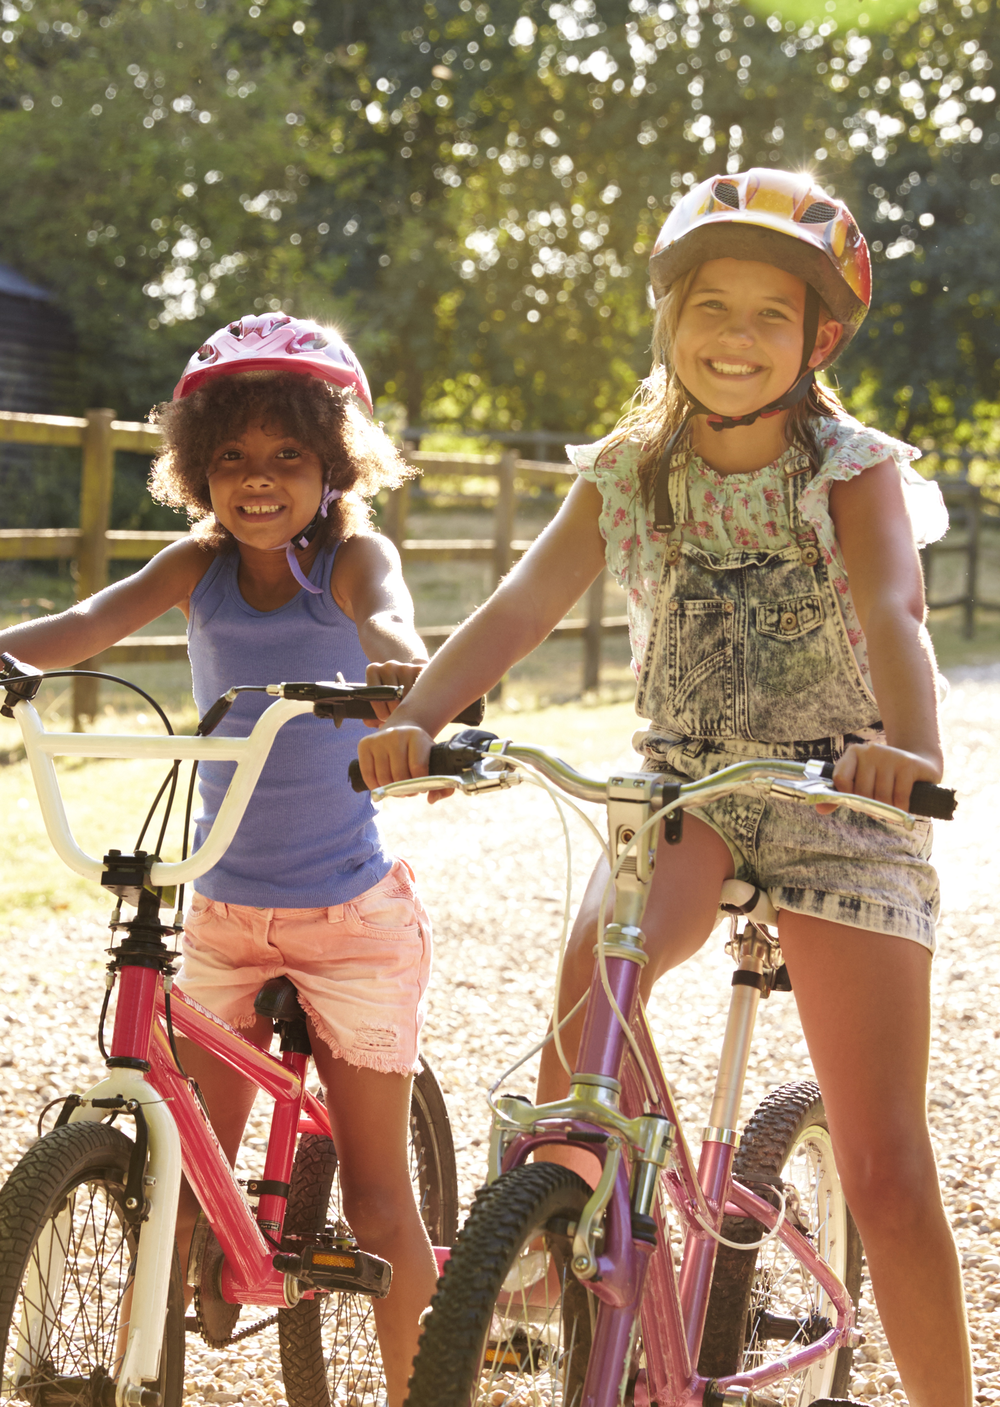 Two girls sitting on bicycles